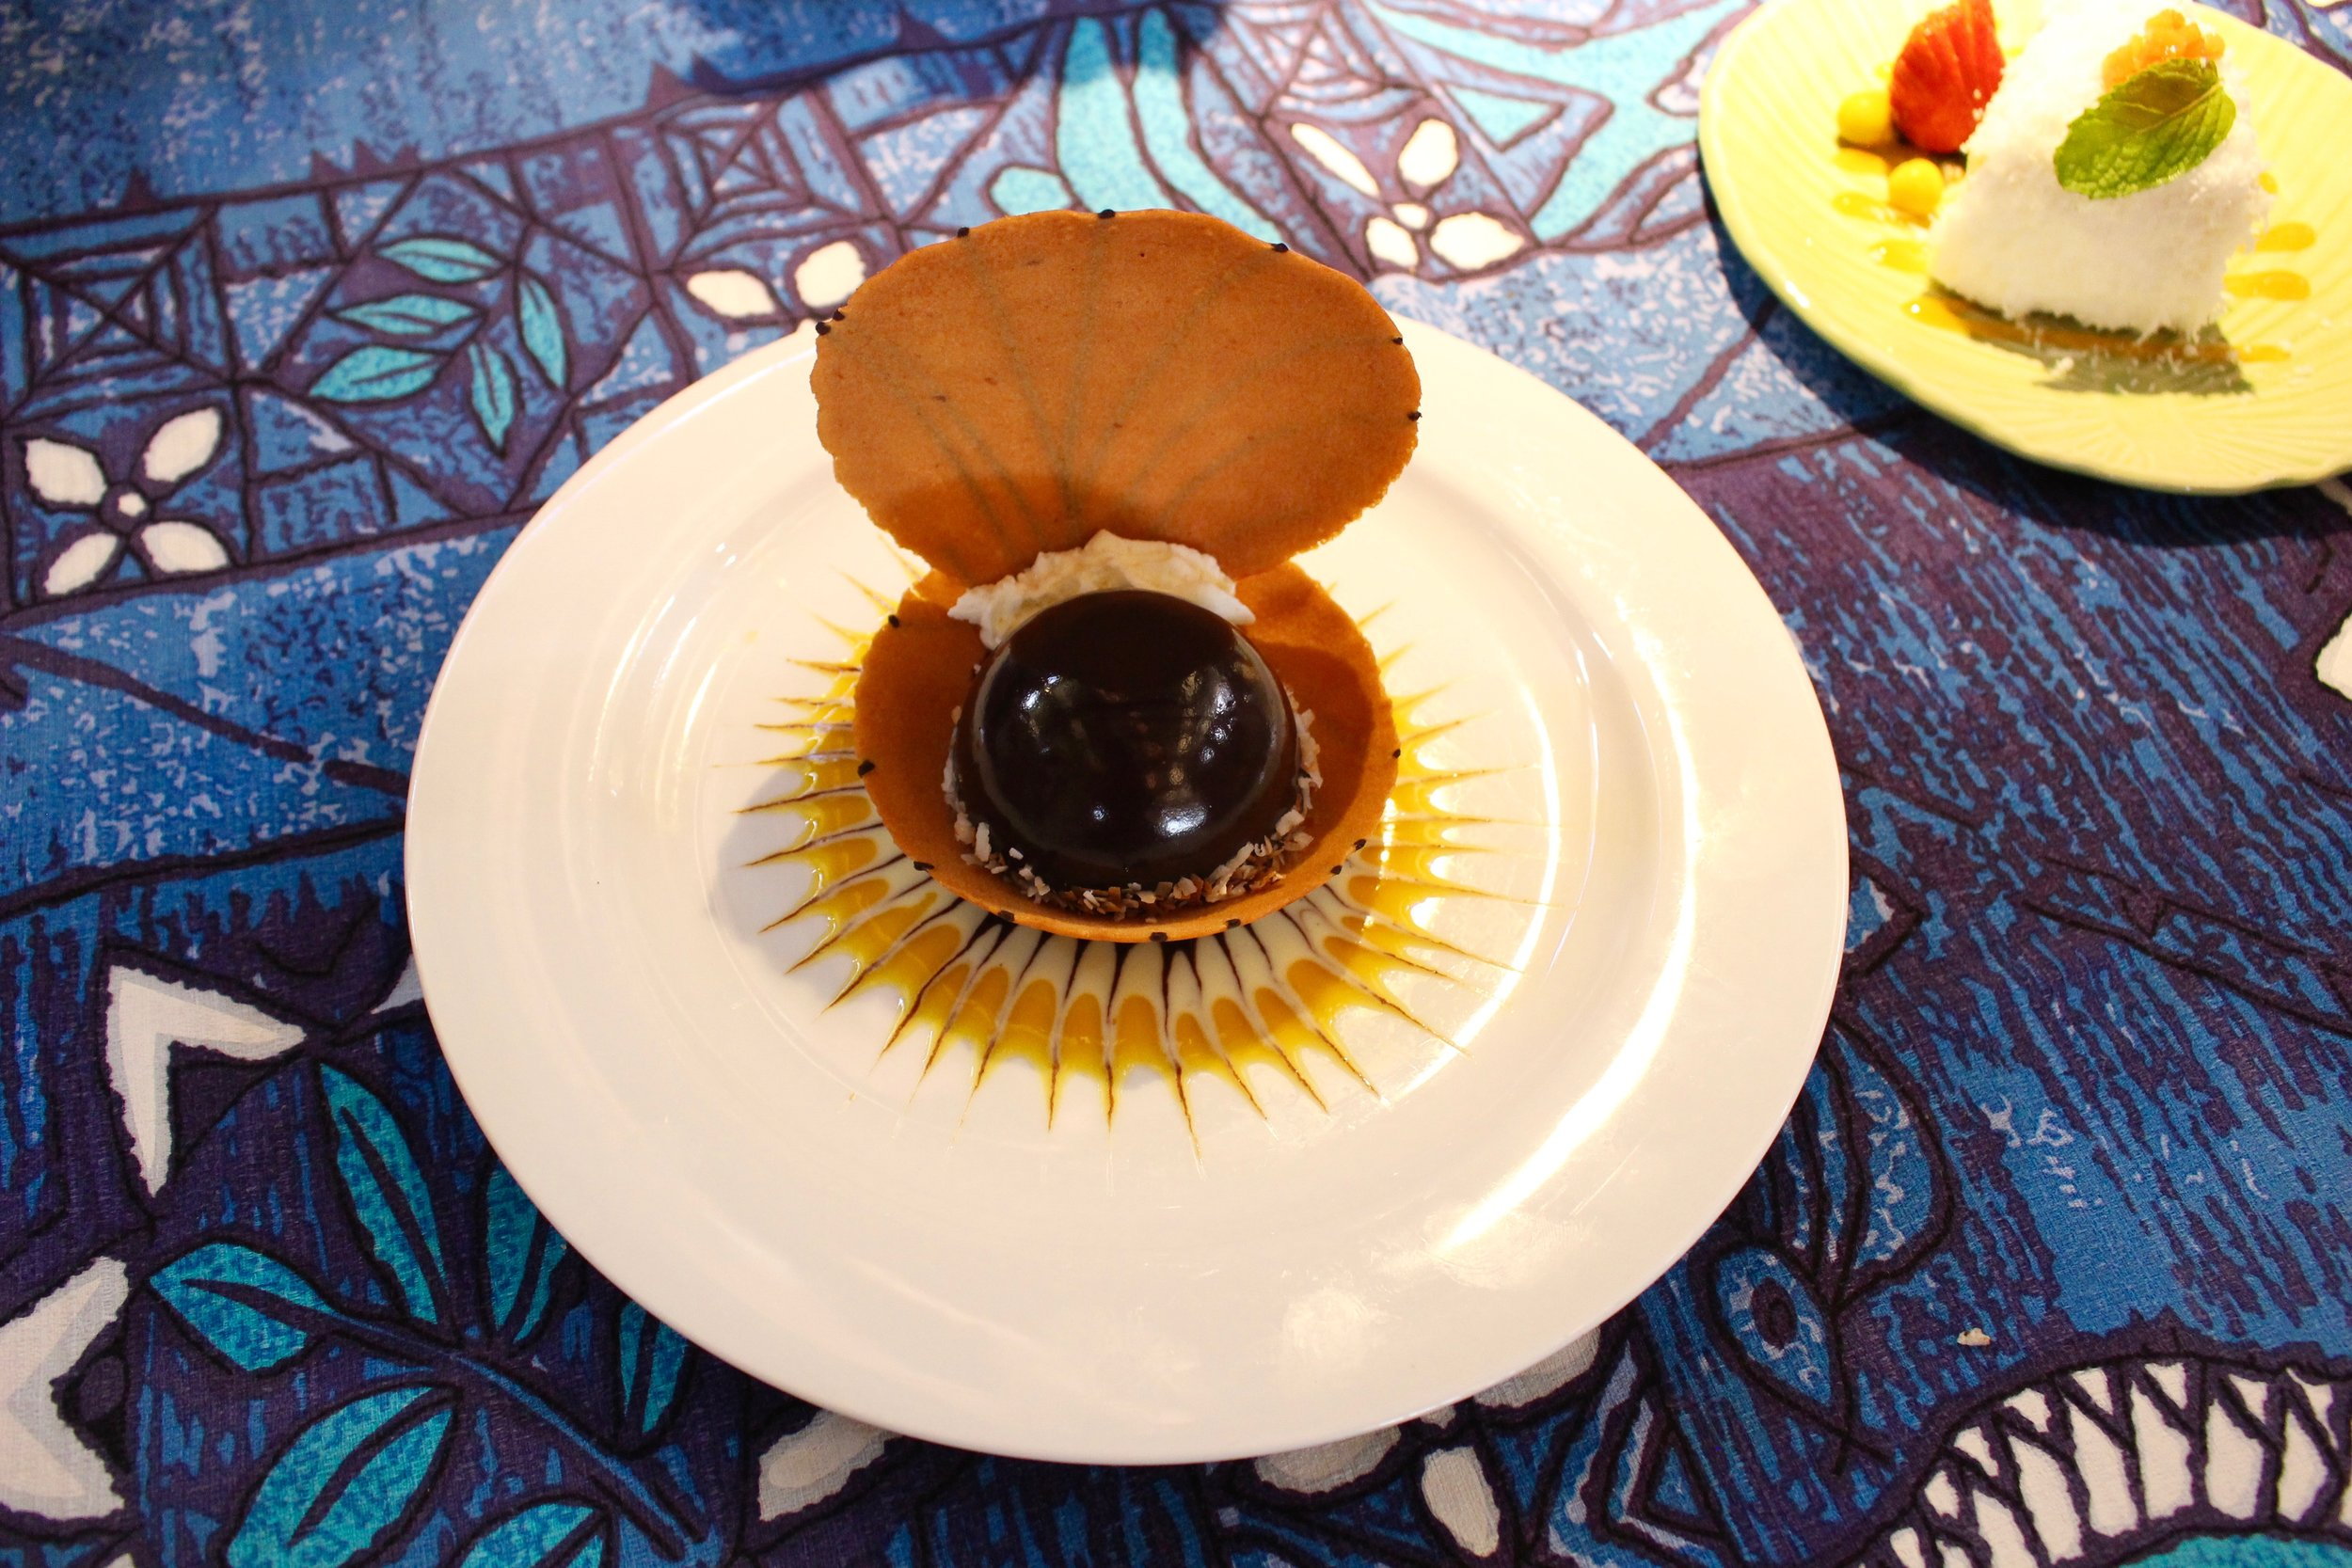 The Polynesian Black Pearl consists of chocolate mousse in a pastry shell. Yes, it tasted as good as it looks.